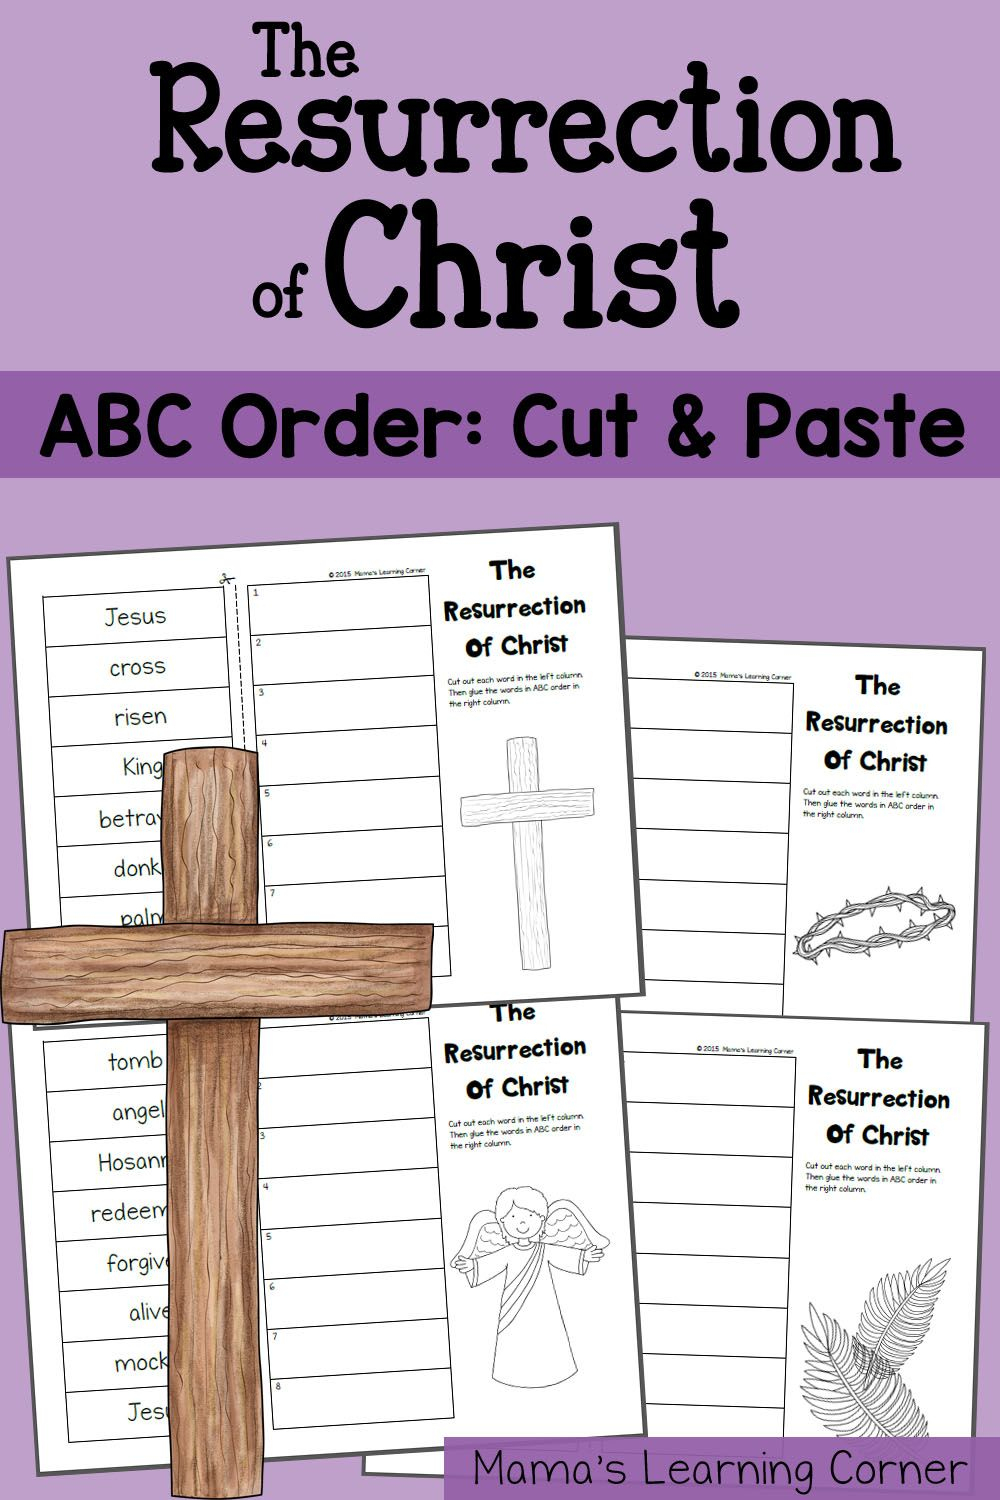 Abc Order Worksheet (Cut And Paste!): The Resurrection Of Christ   Religious Worksheets Printable